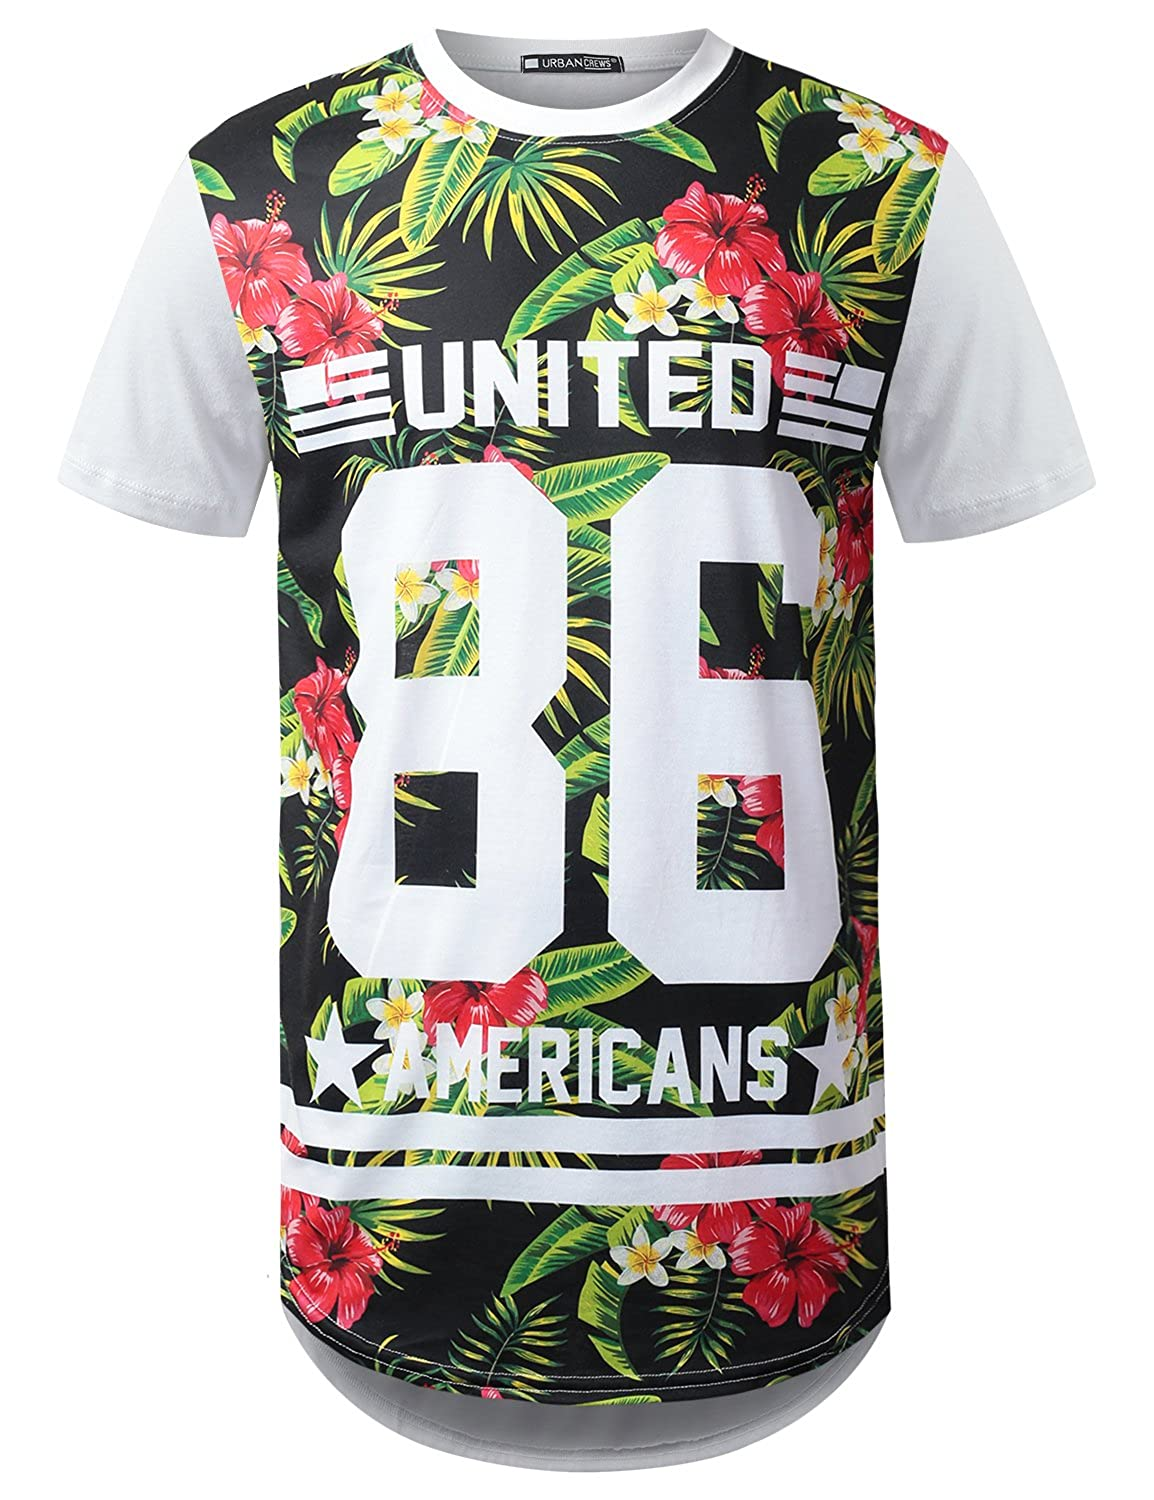 URBANCREWS Mens Hipster Hip Hop Graphic Print Longline Jersey T-Shirt